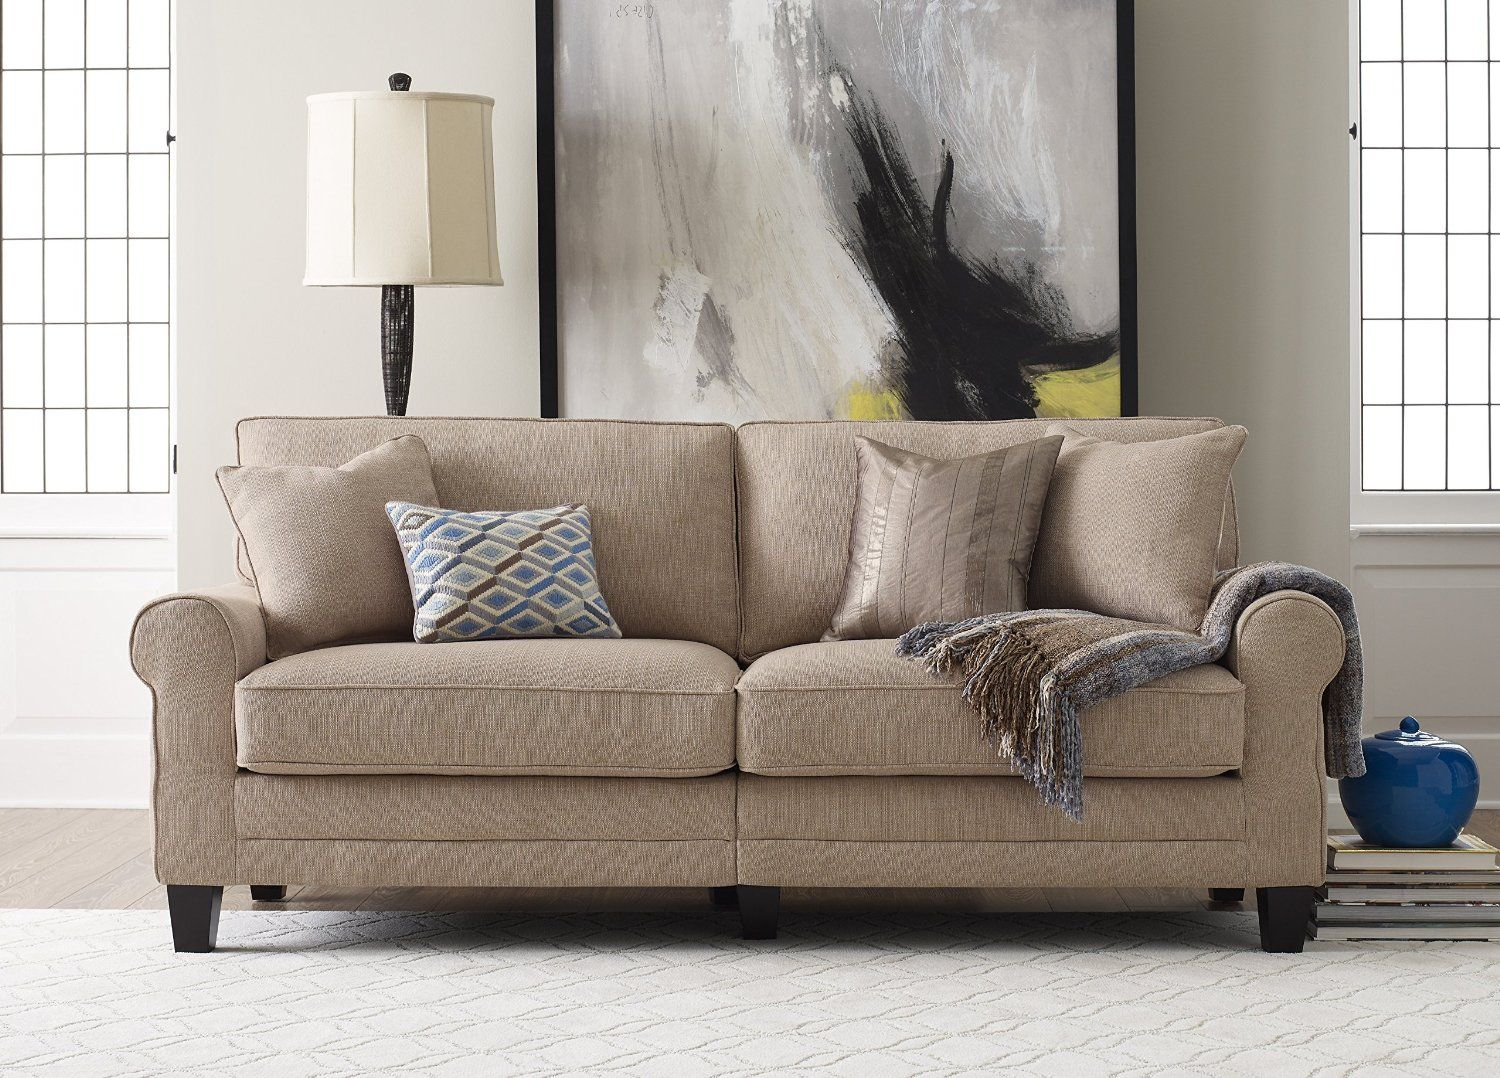 Sectional Sofas Kitchener Most Comfortable Sofa Beds 2017 Awesome Home